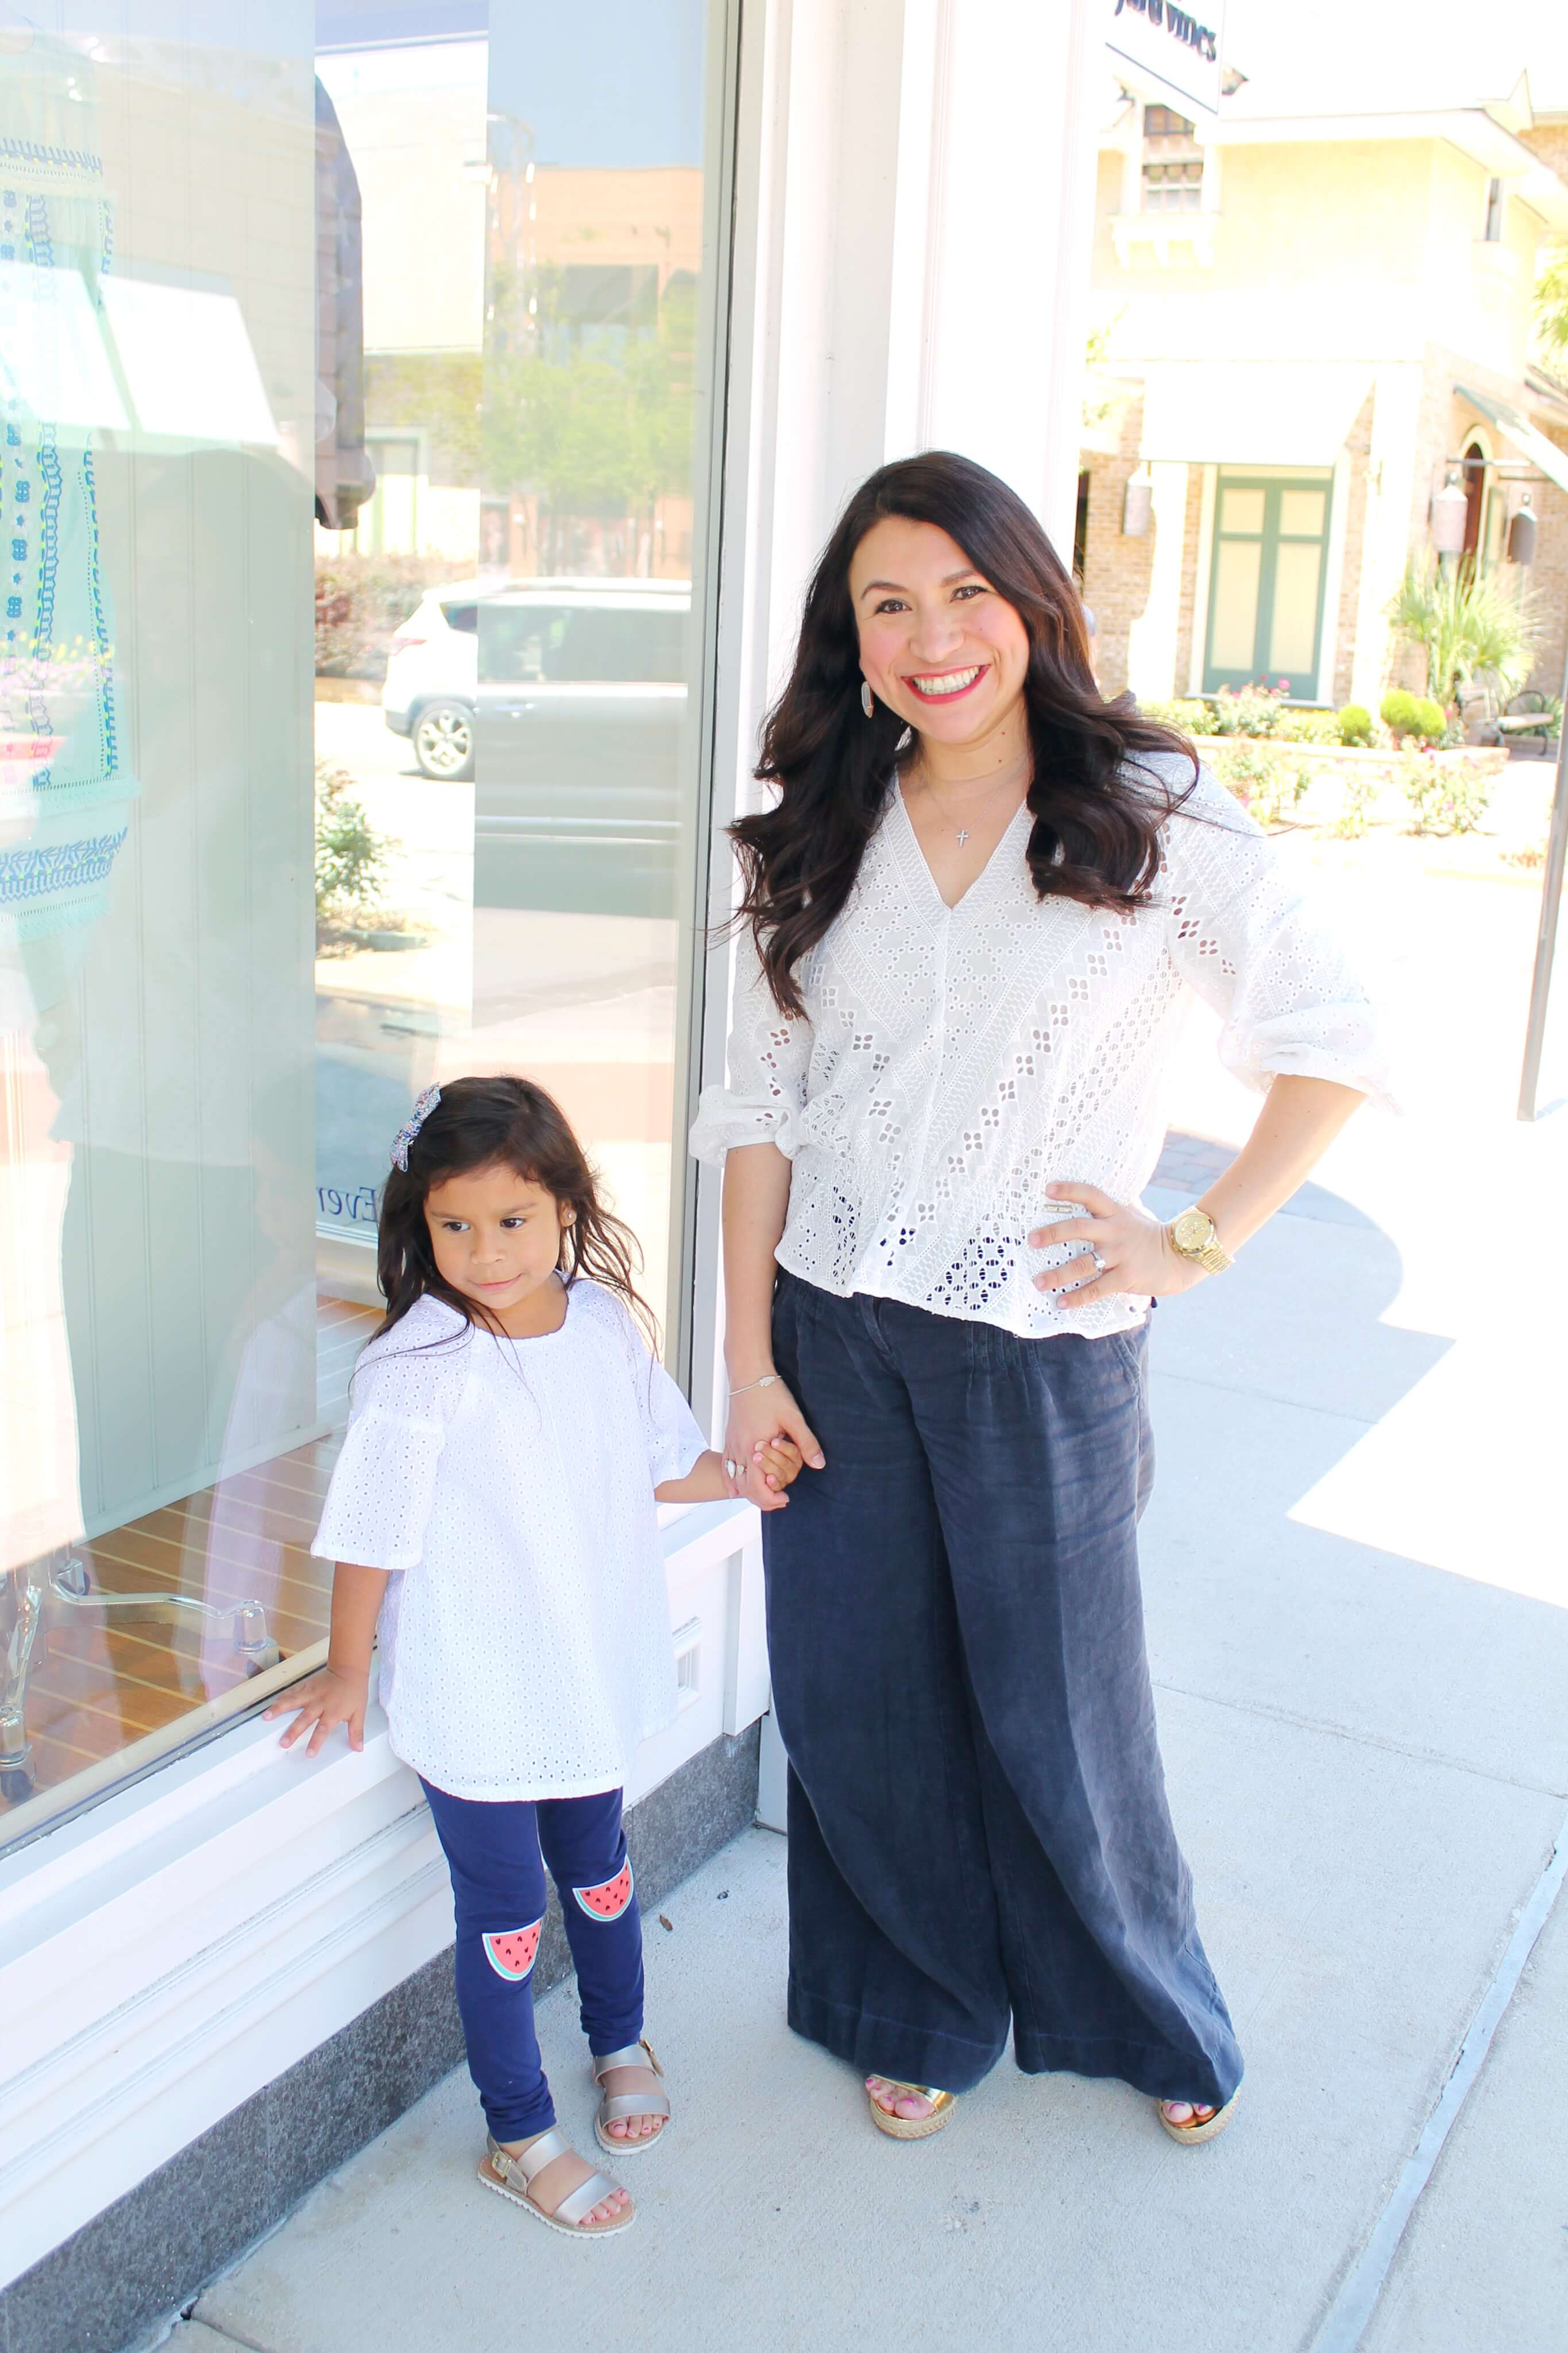 Mama & Mini fashion. Eyelet tops and navy pants for spring.